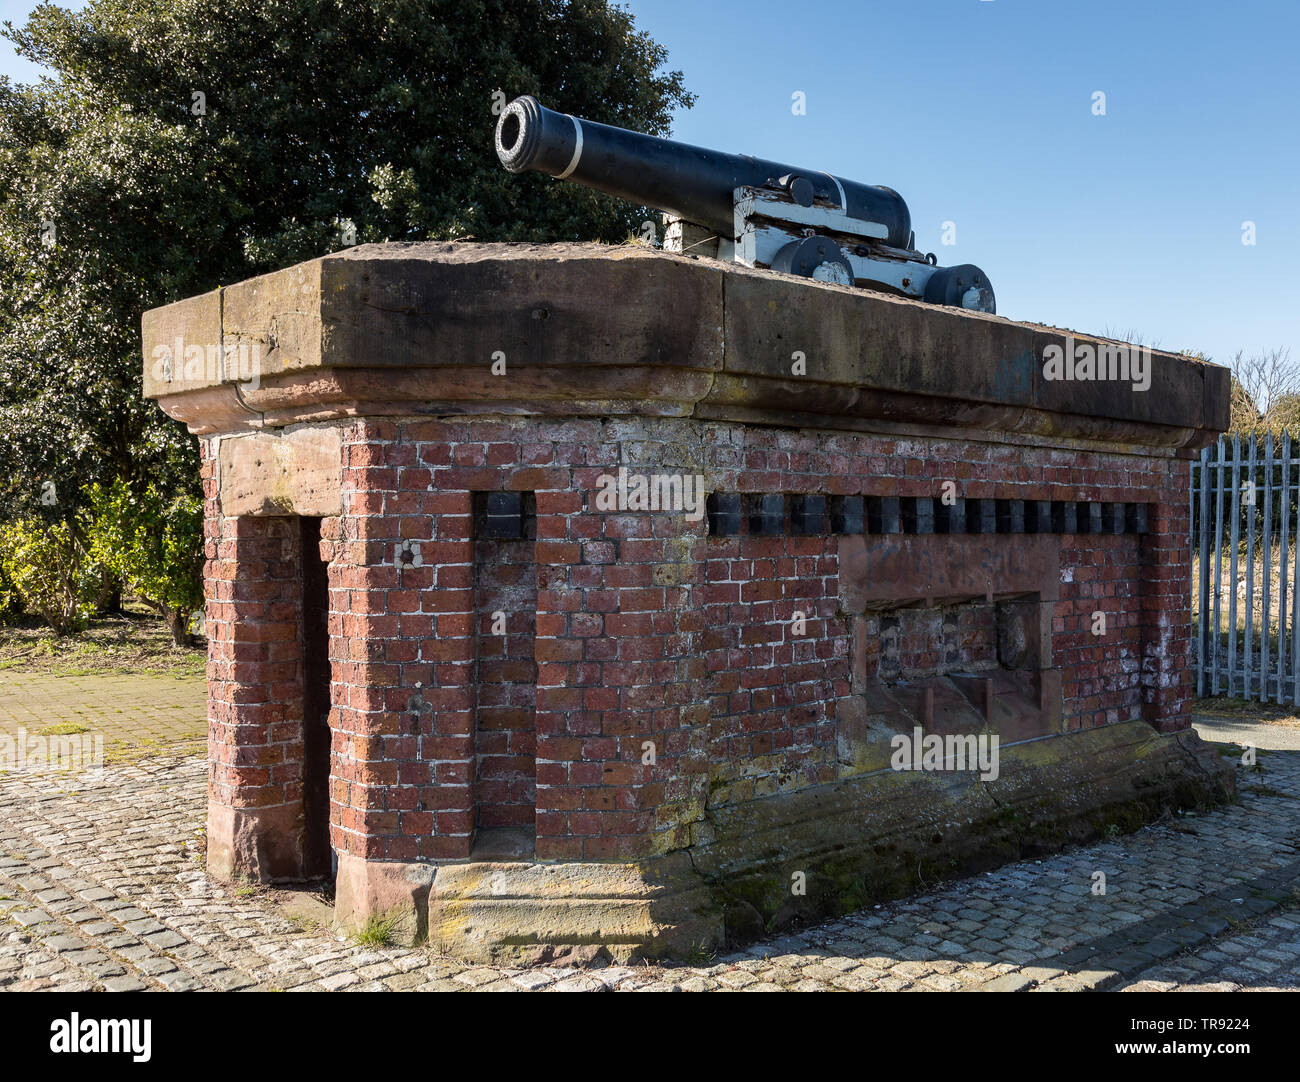 Cannon from the Crimean War as the One o'Clock Gun at Morpeth Dock Wirral April 2019 Stock Photo